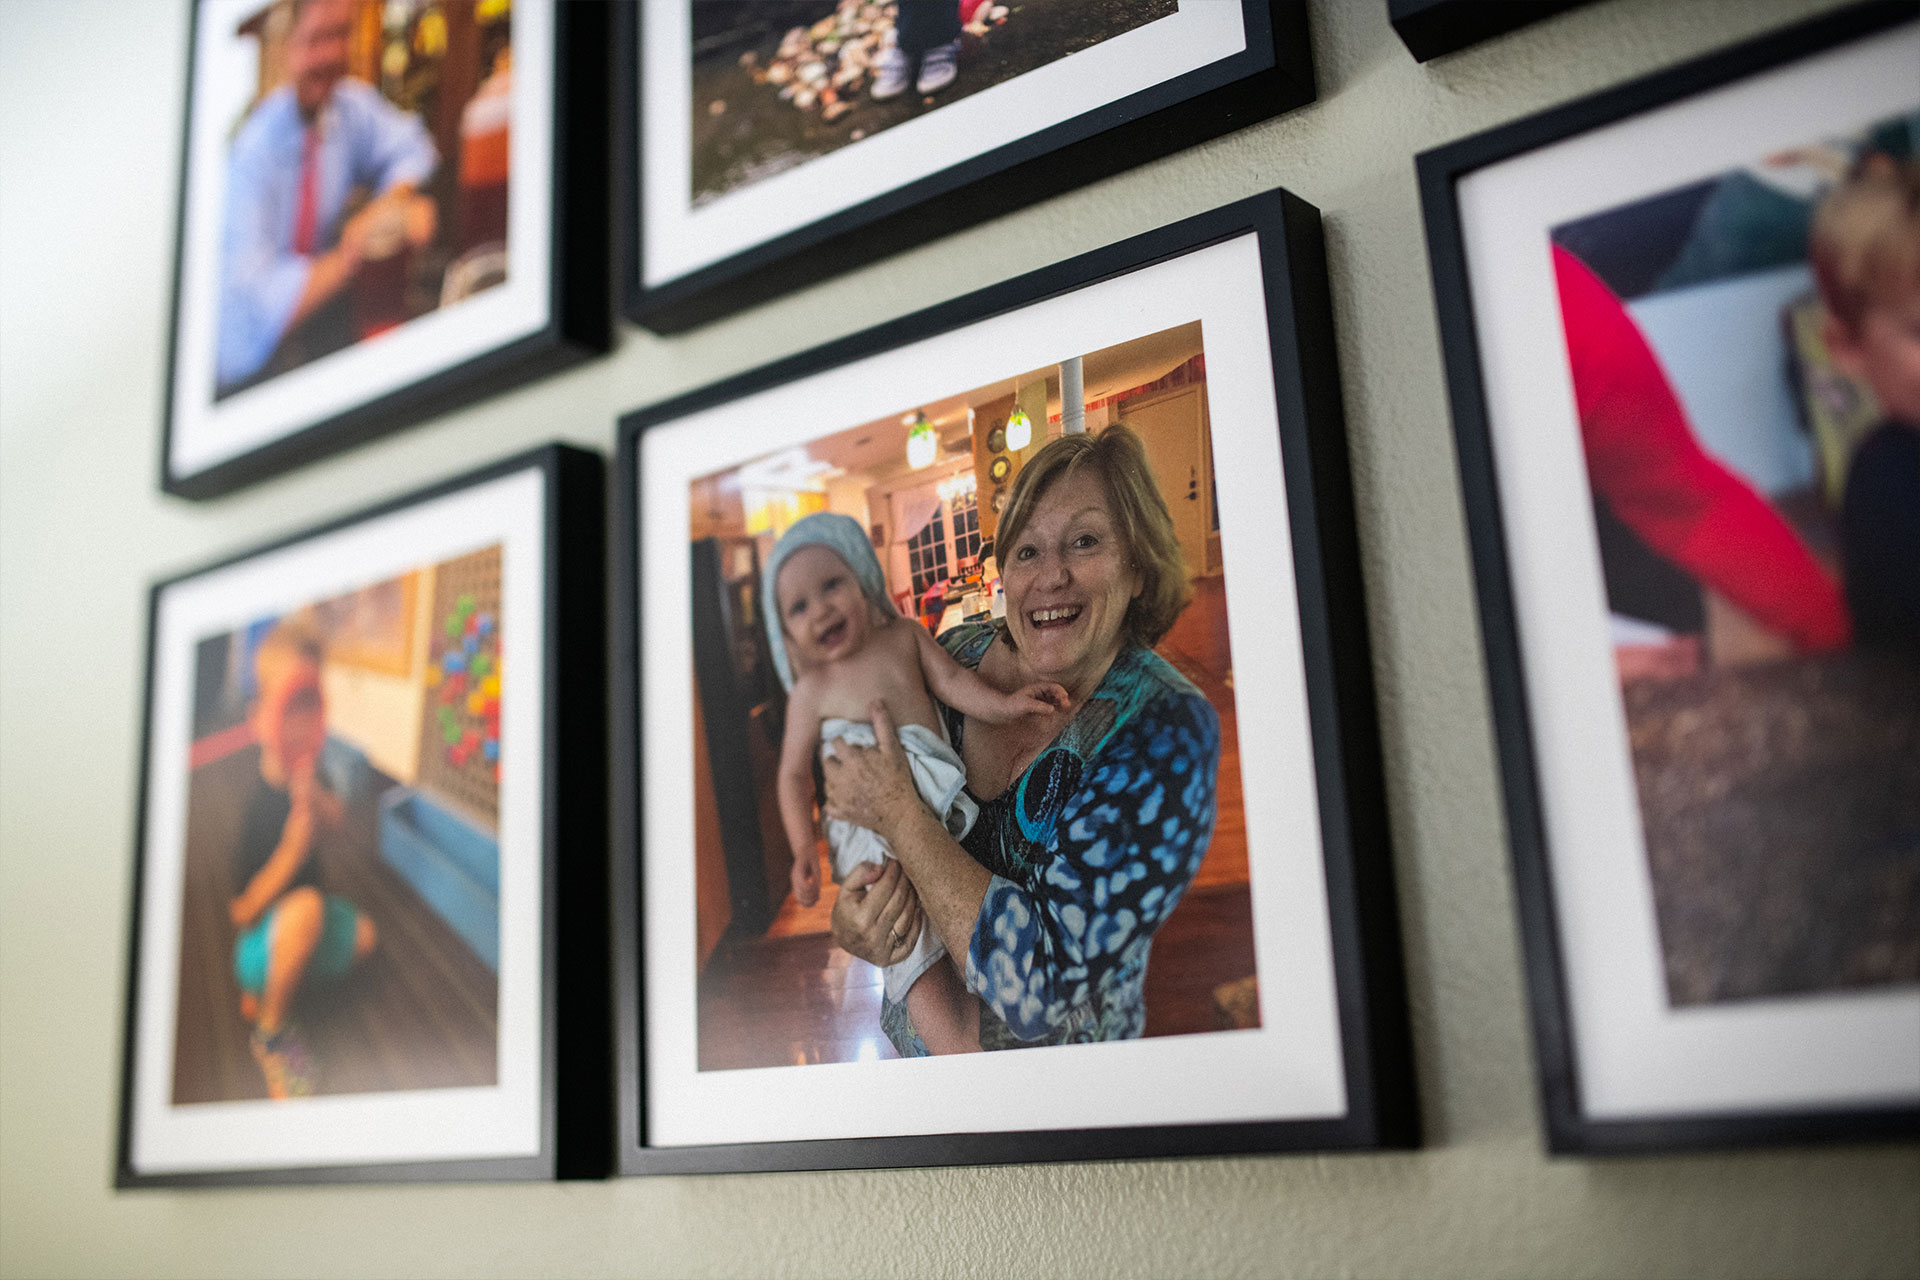 Framed photographs of Suzanne and her grandkids hanging on a wall.